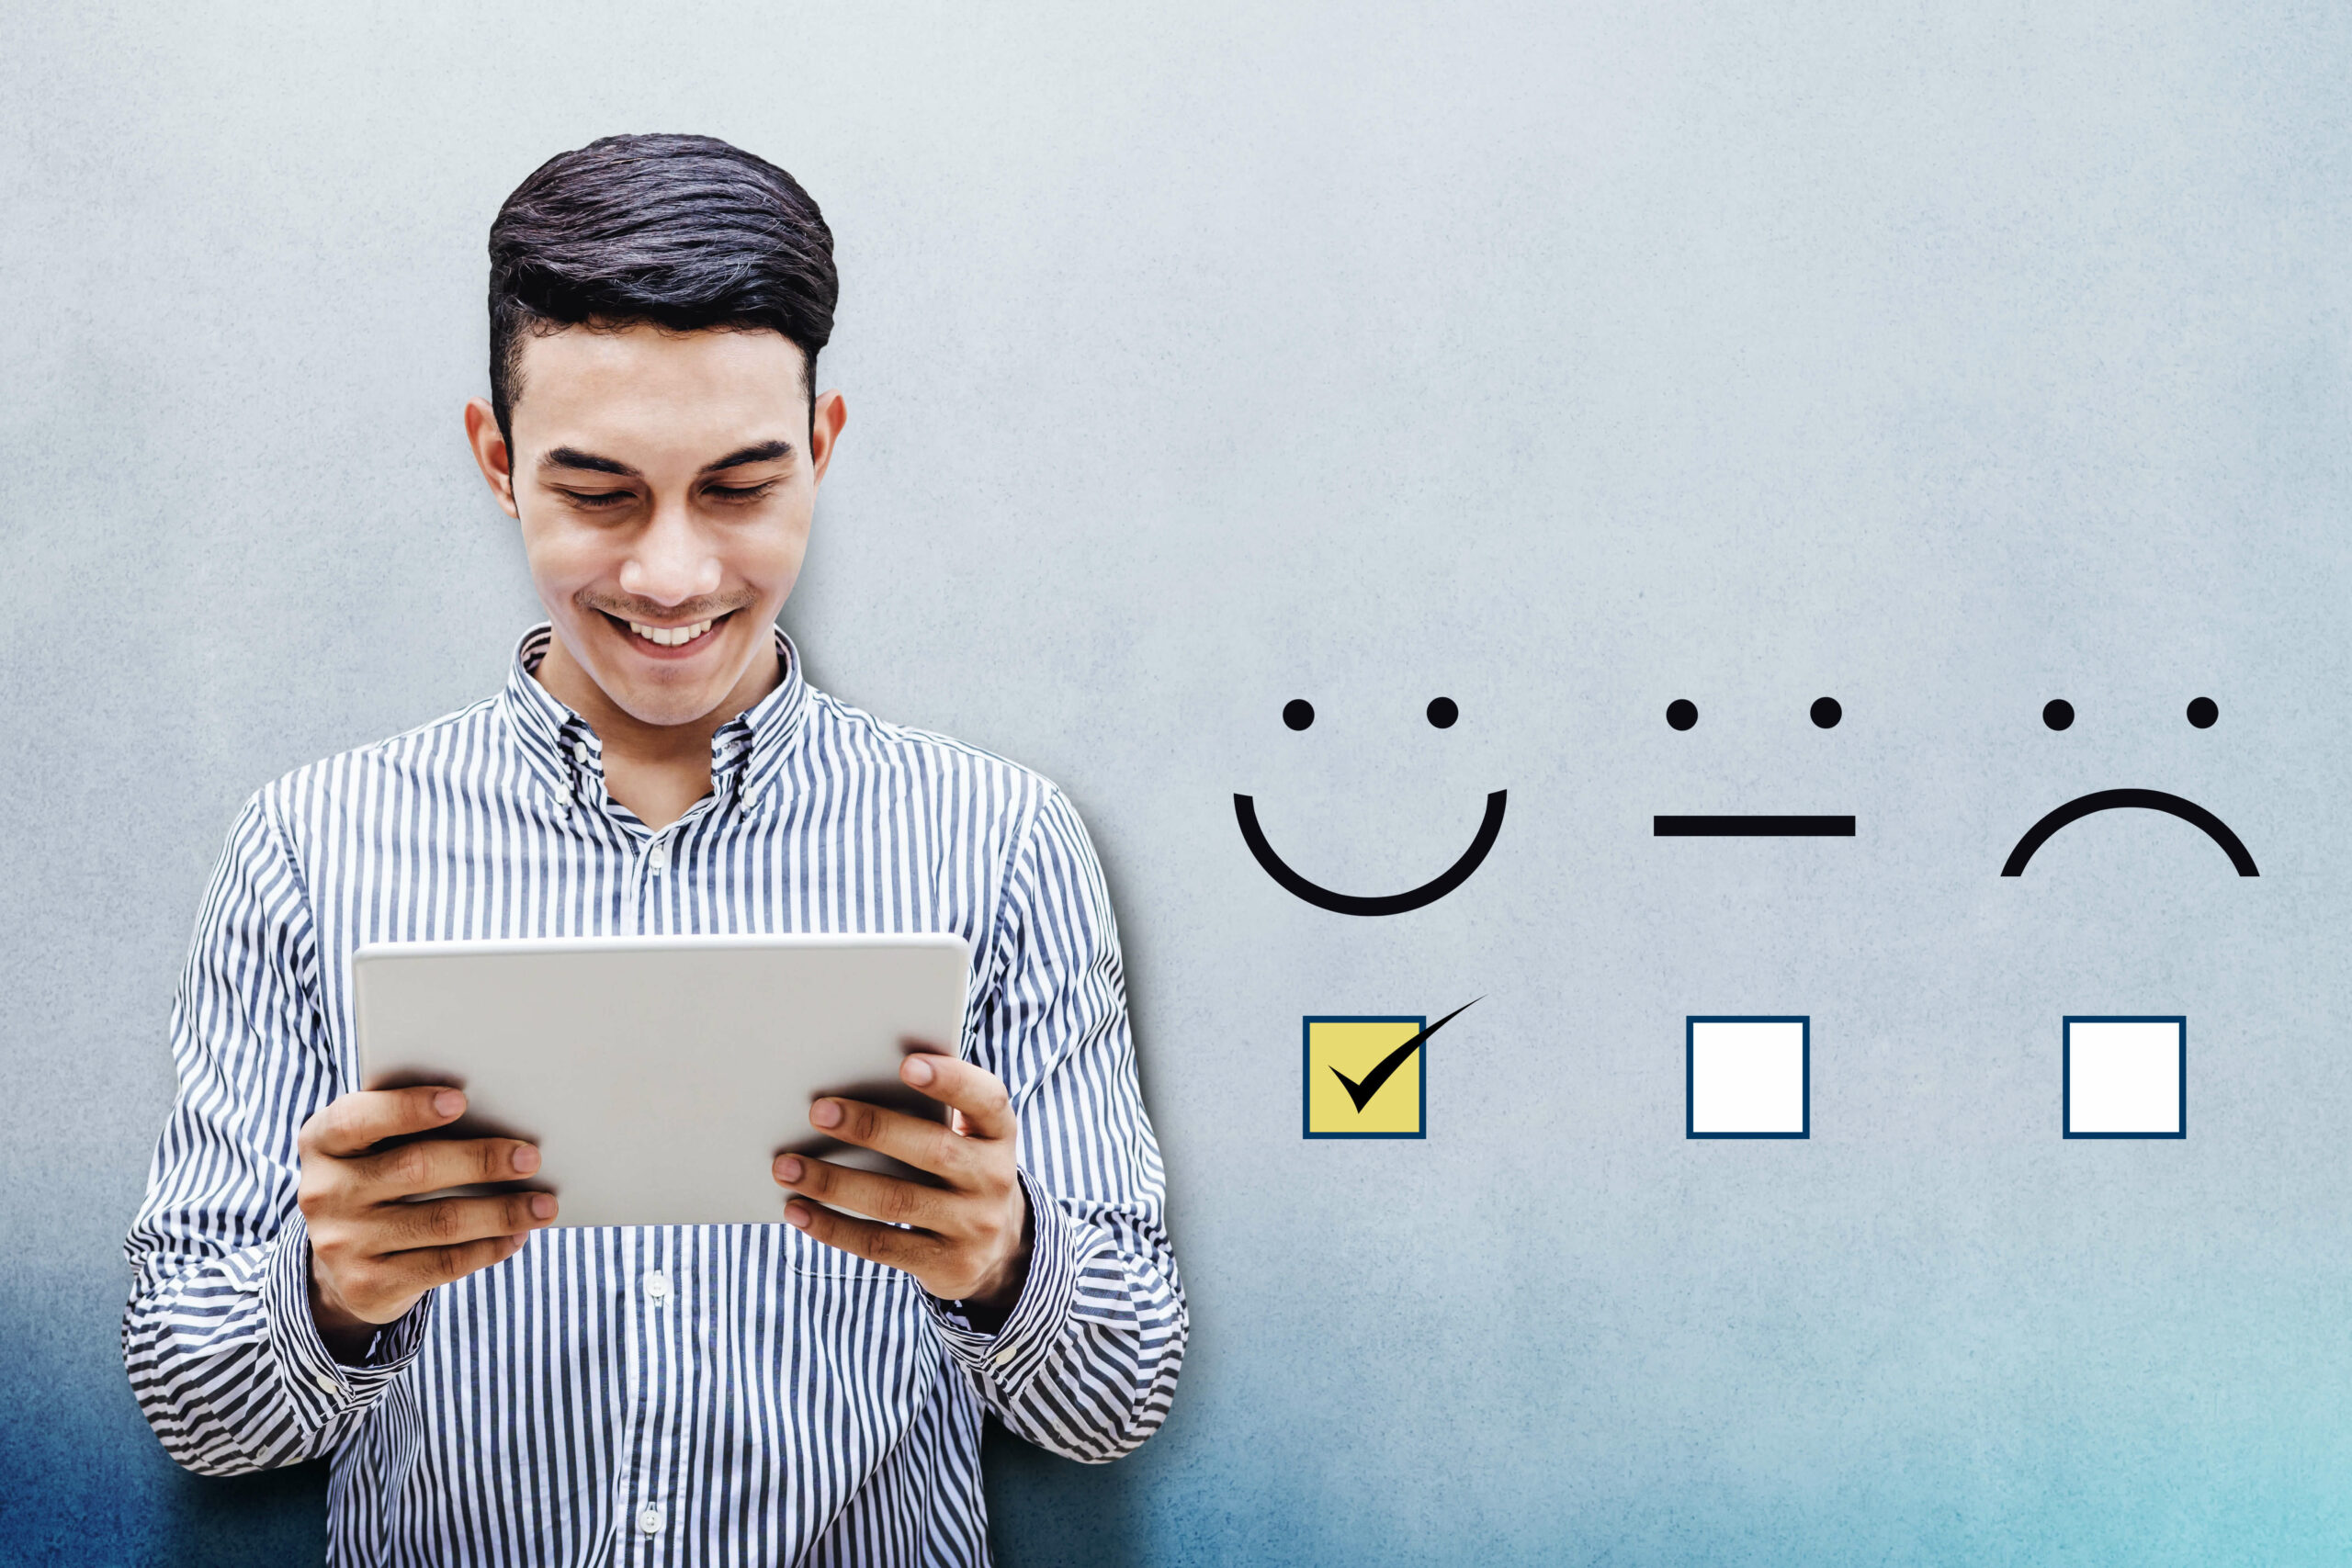 Customer Relationship Management: Mach deine Kunden happy!